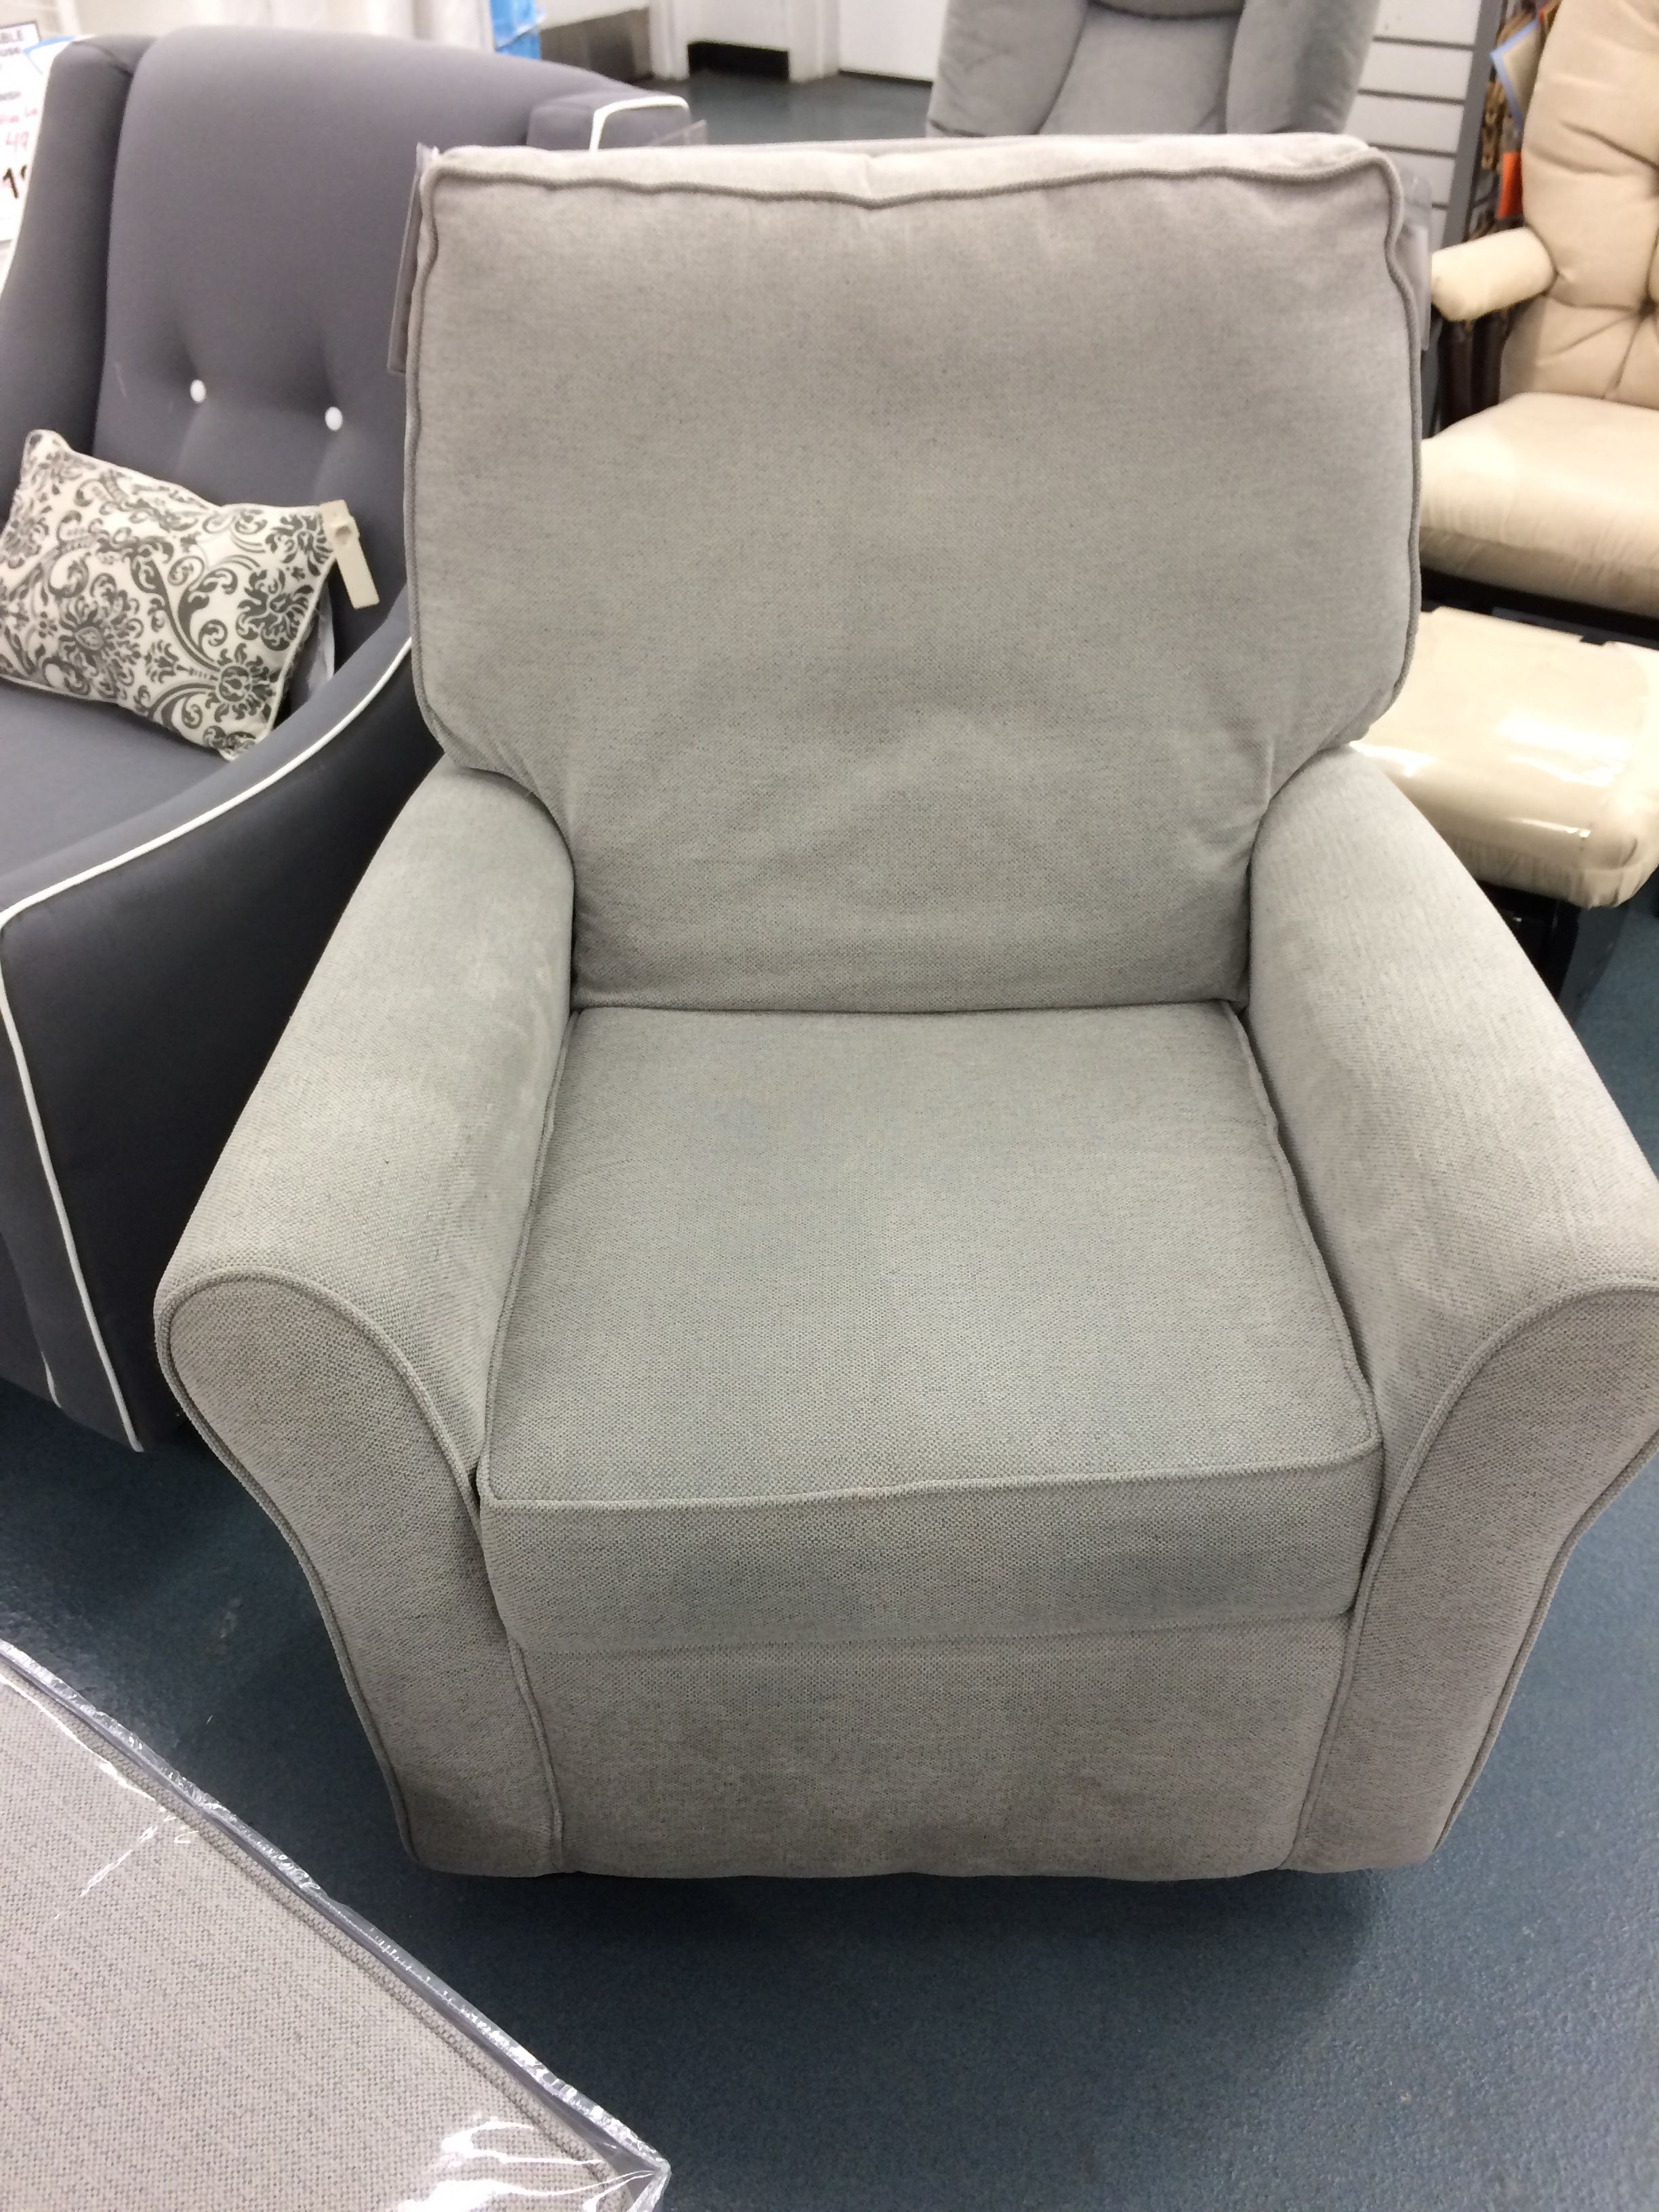 little castle chair and half glider green upholstered serra at nyc buybuybaby baby room